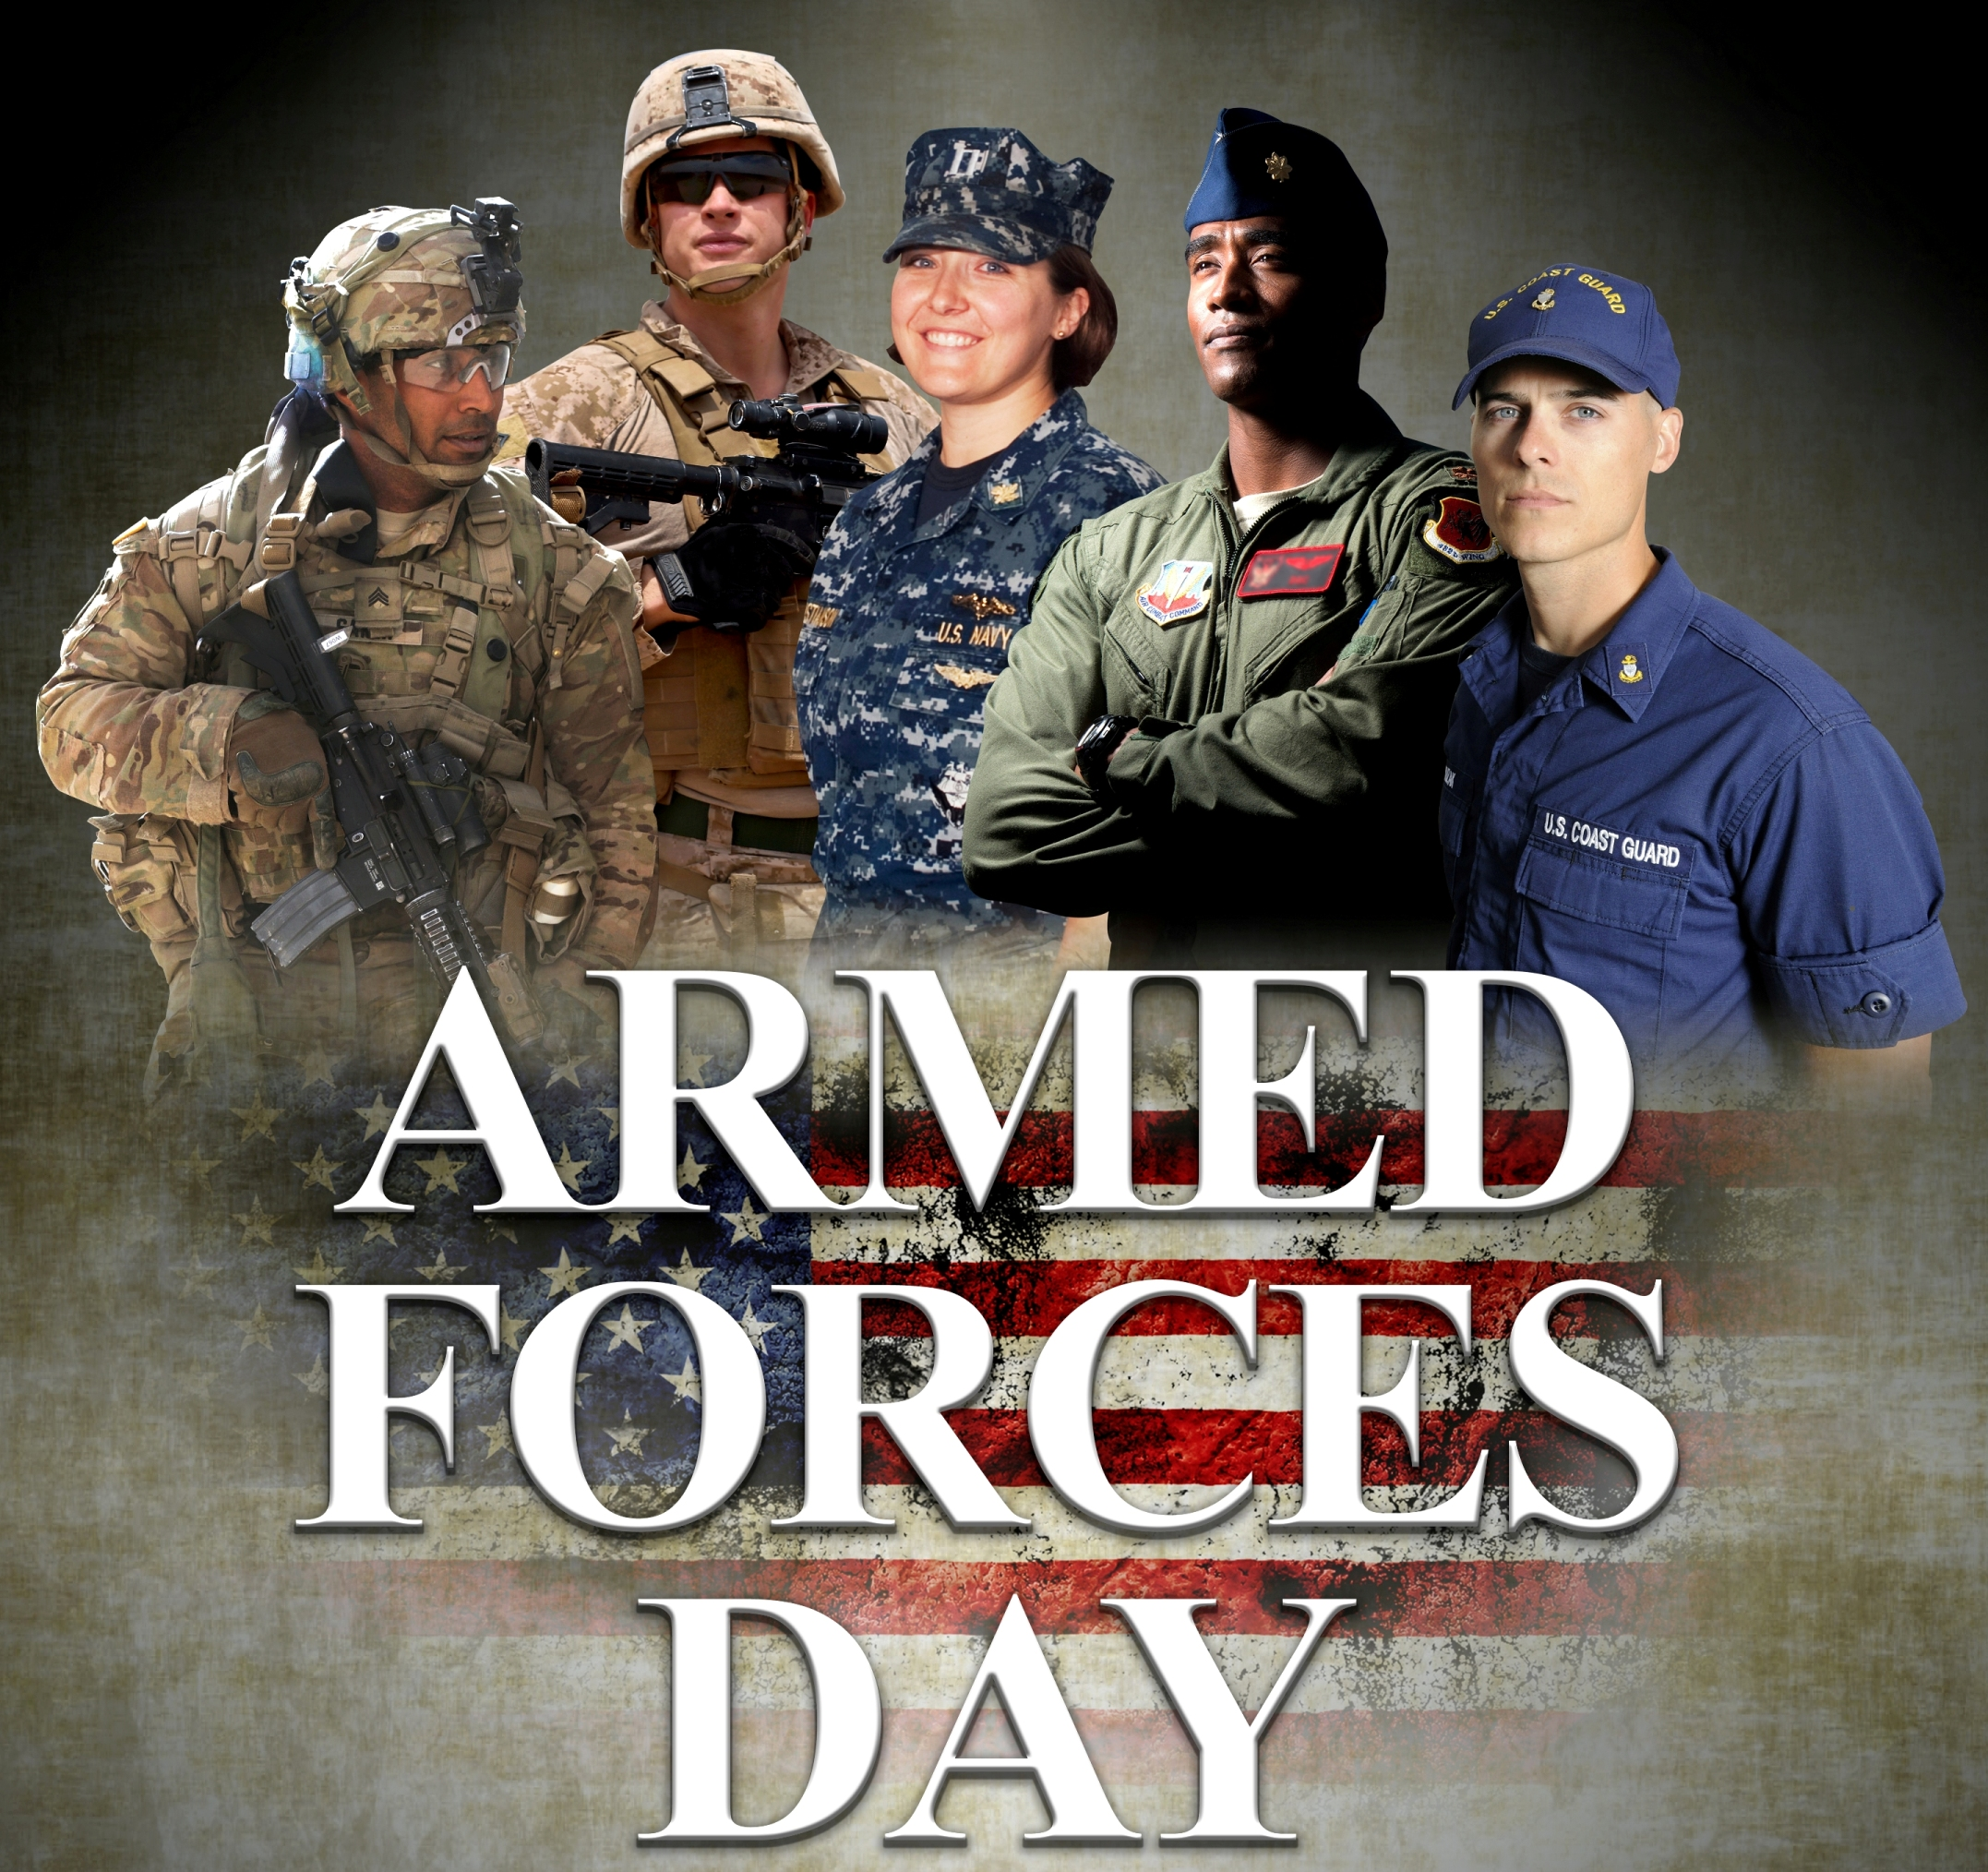 Annual Armed Forces Day Cross Band Communications Test Set